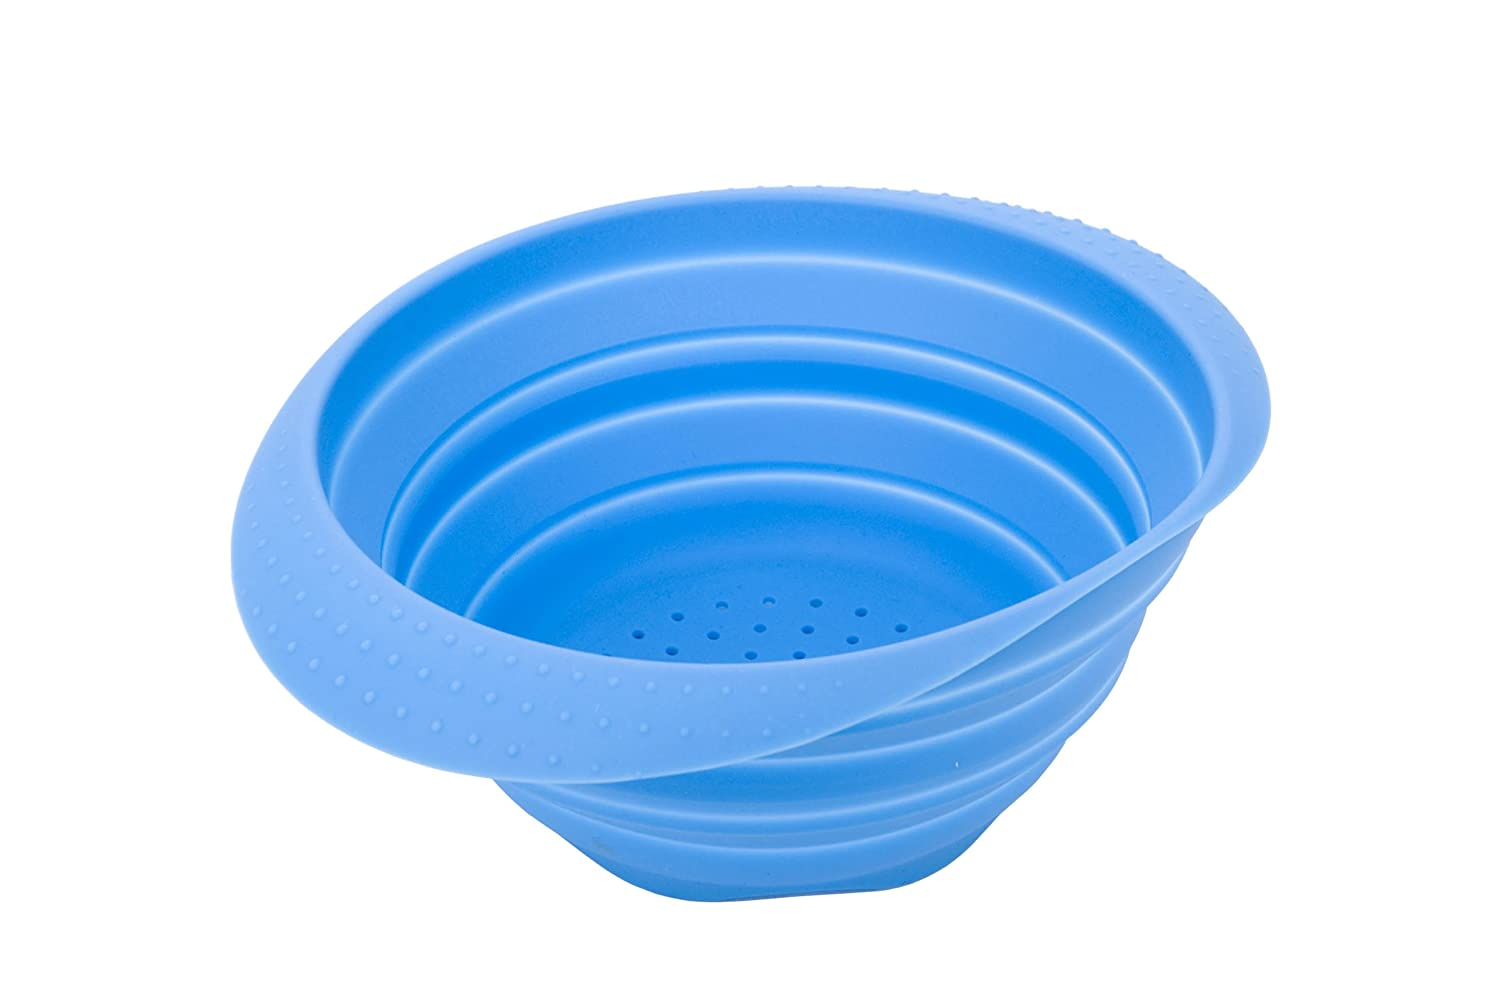 MIU France Collapsible Silicone Colander, Blue 99029